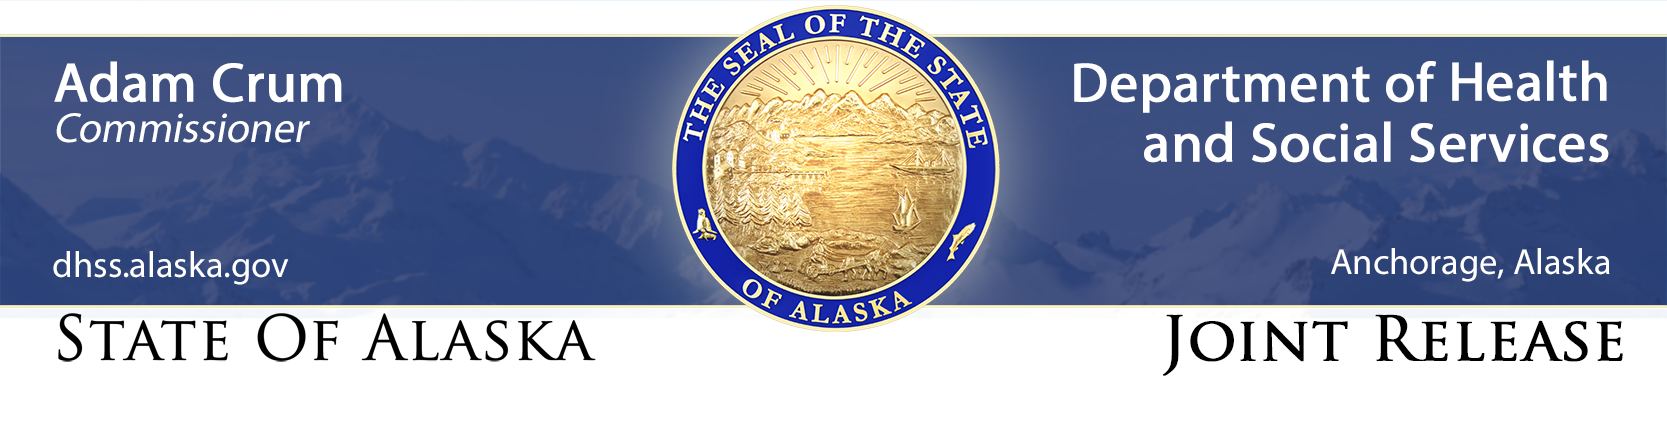 Alaska Department of Health & Social Services Joint Press Release